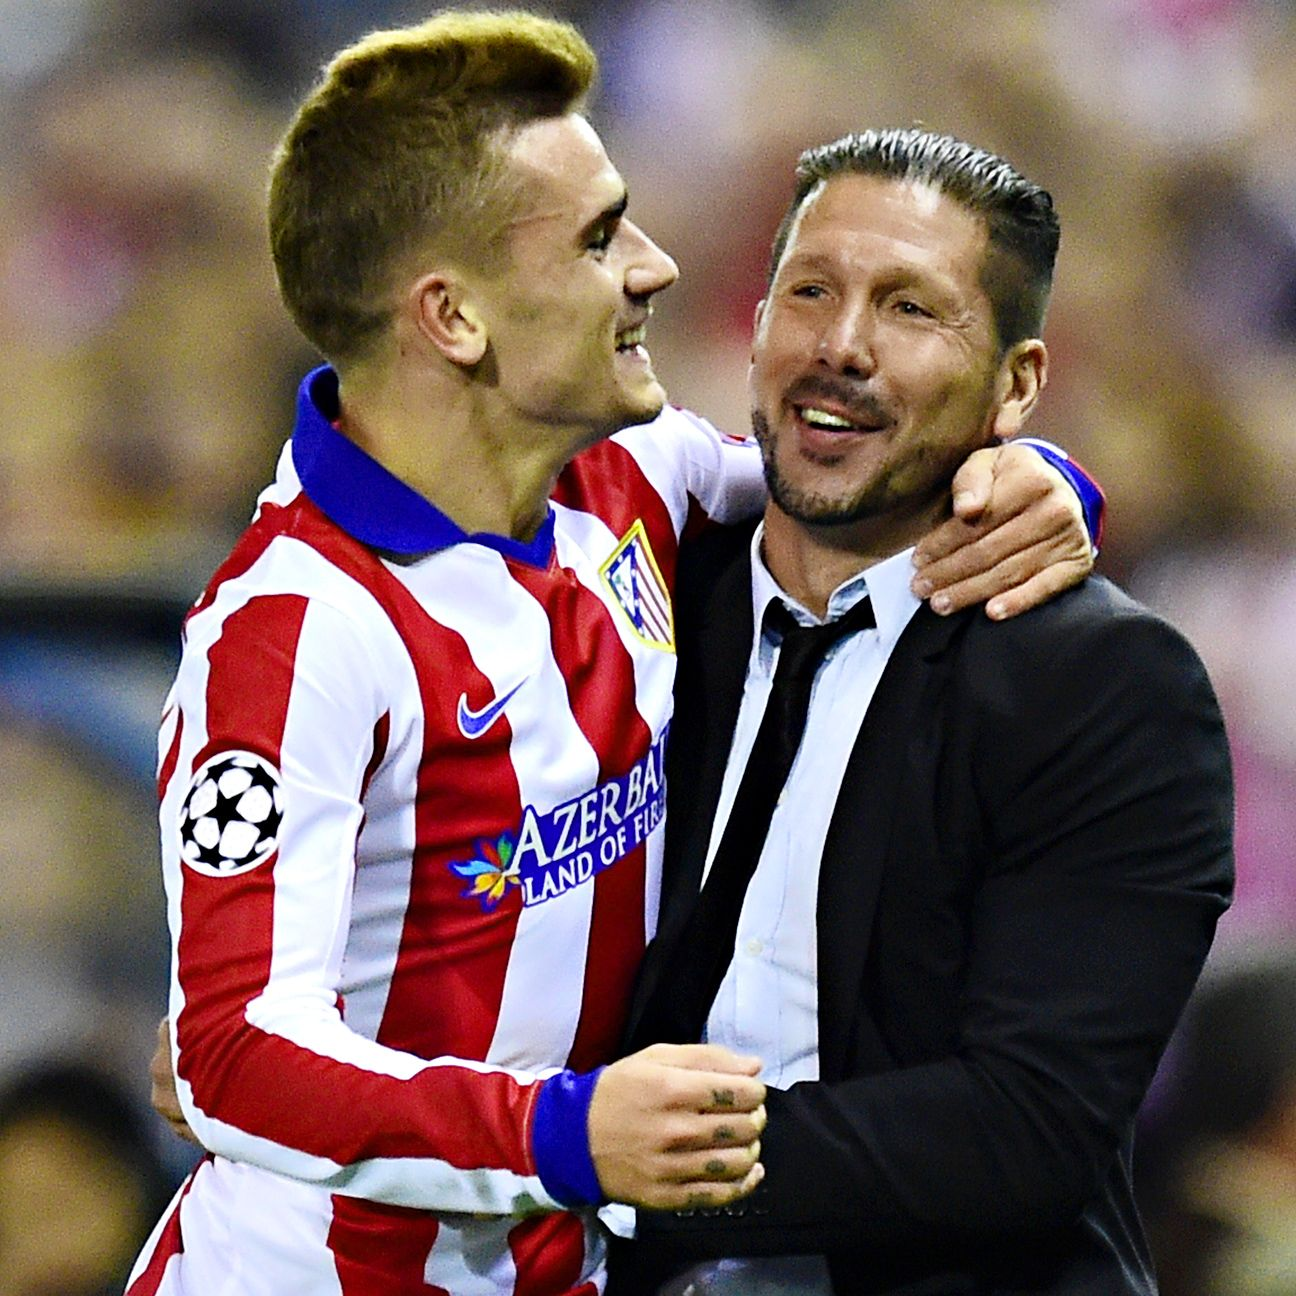 Under the tutelage of manager Diego Simeone, Griezmann has emerged as a scoring threat for Atletico.